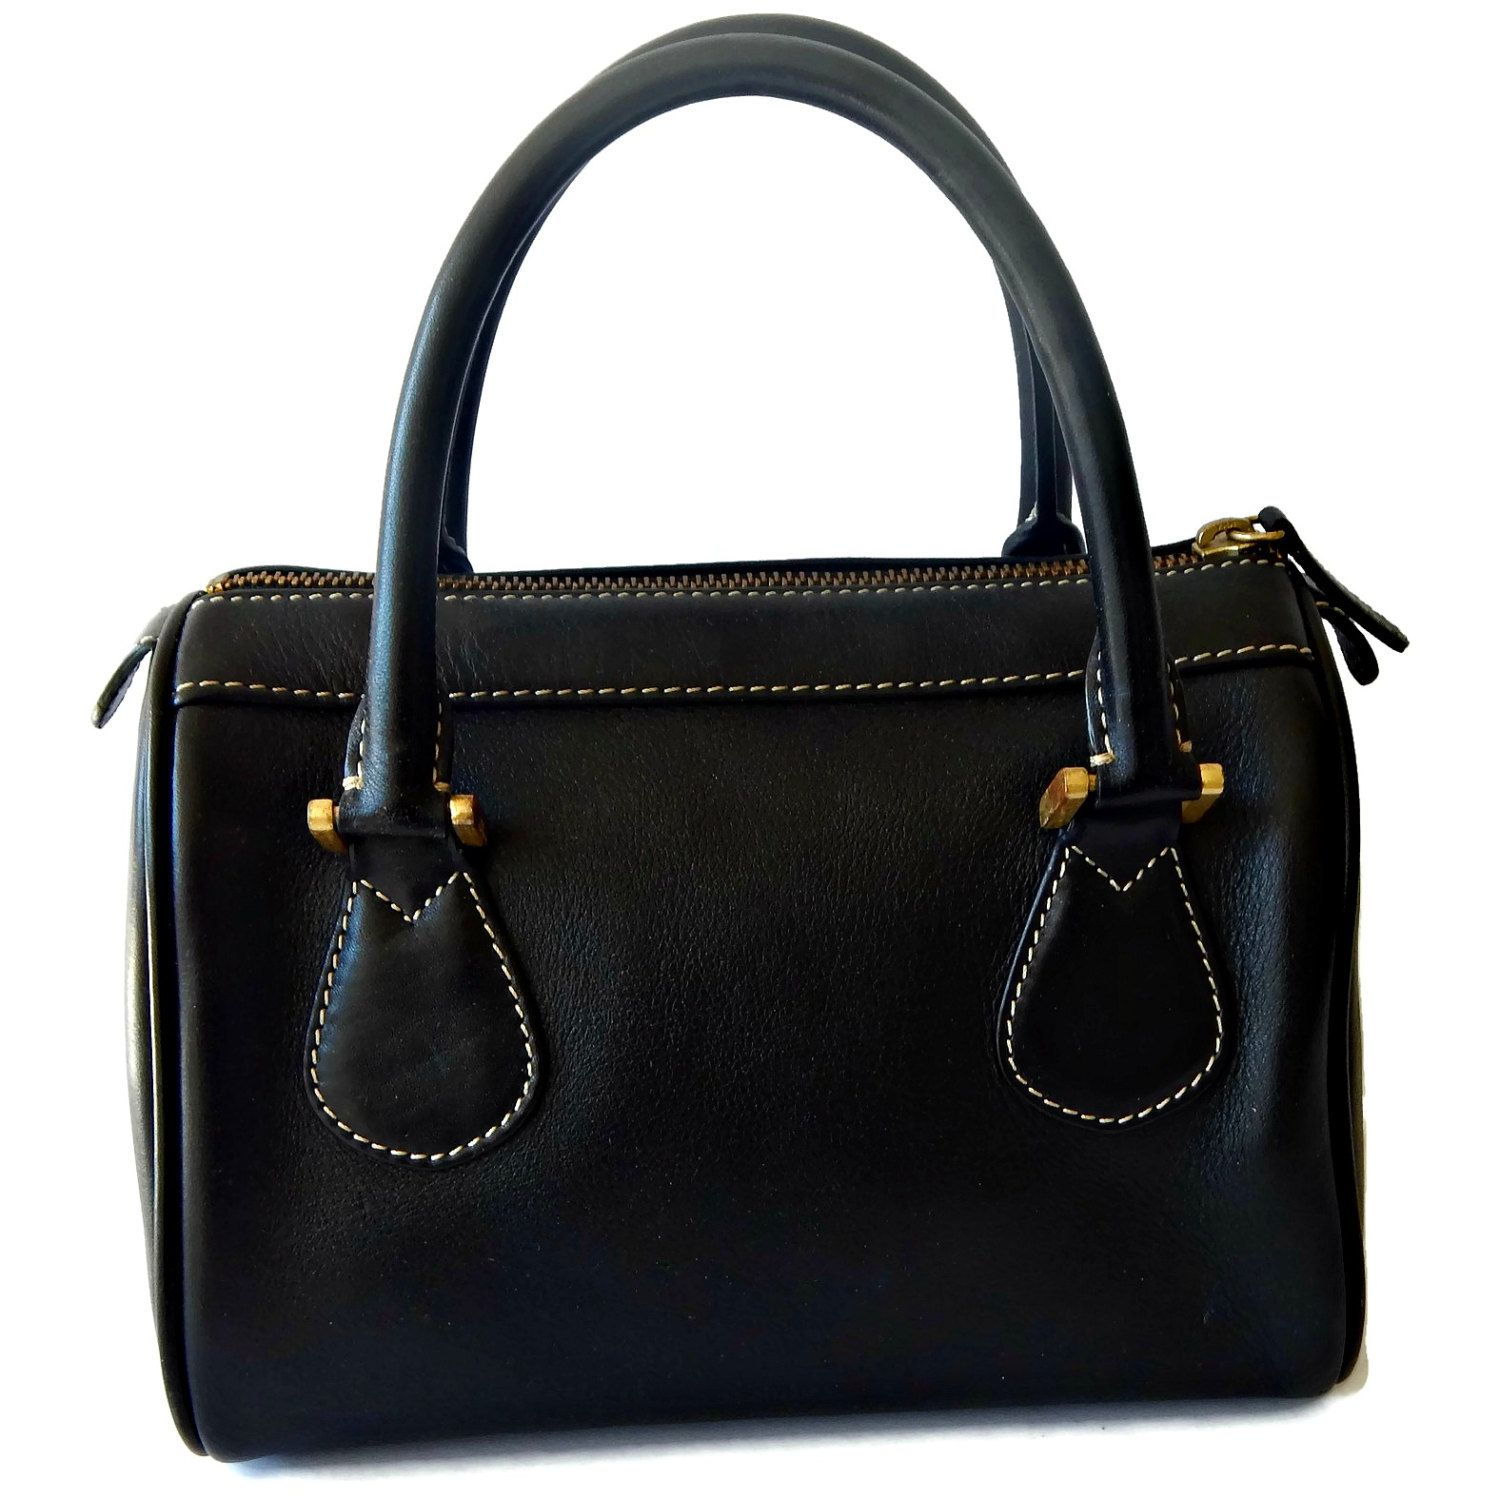 Black Leather Doctor Handbag